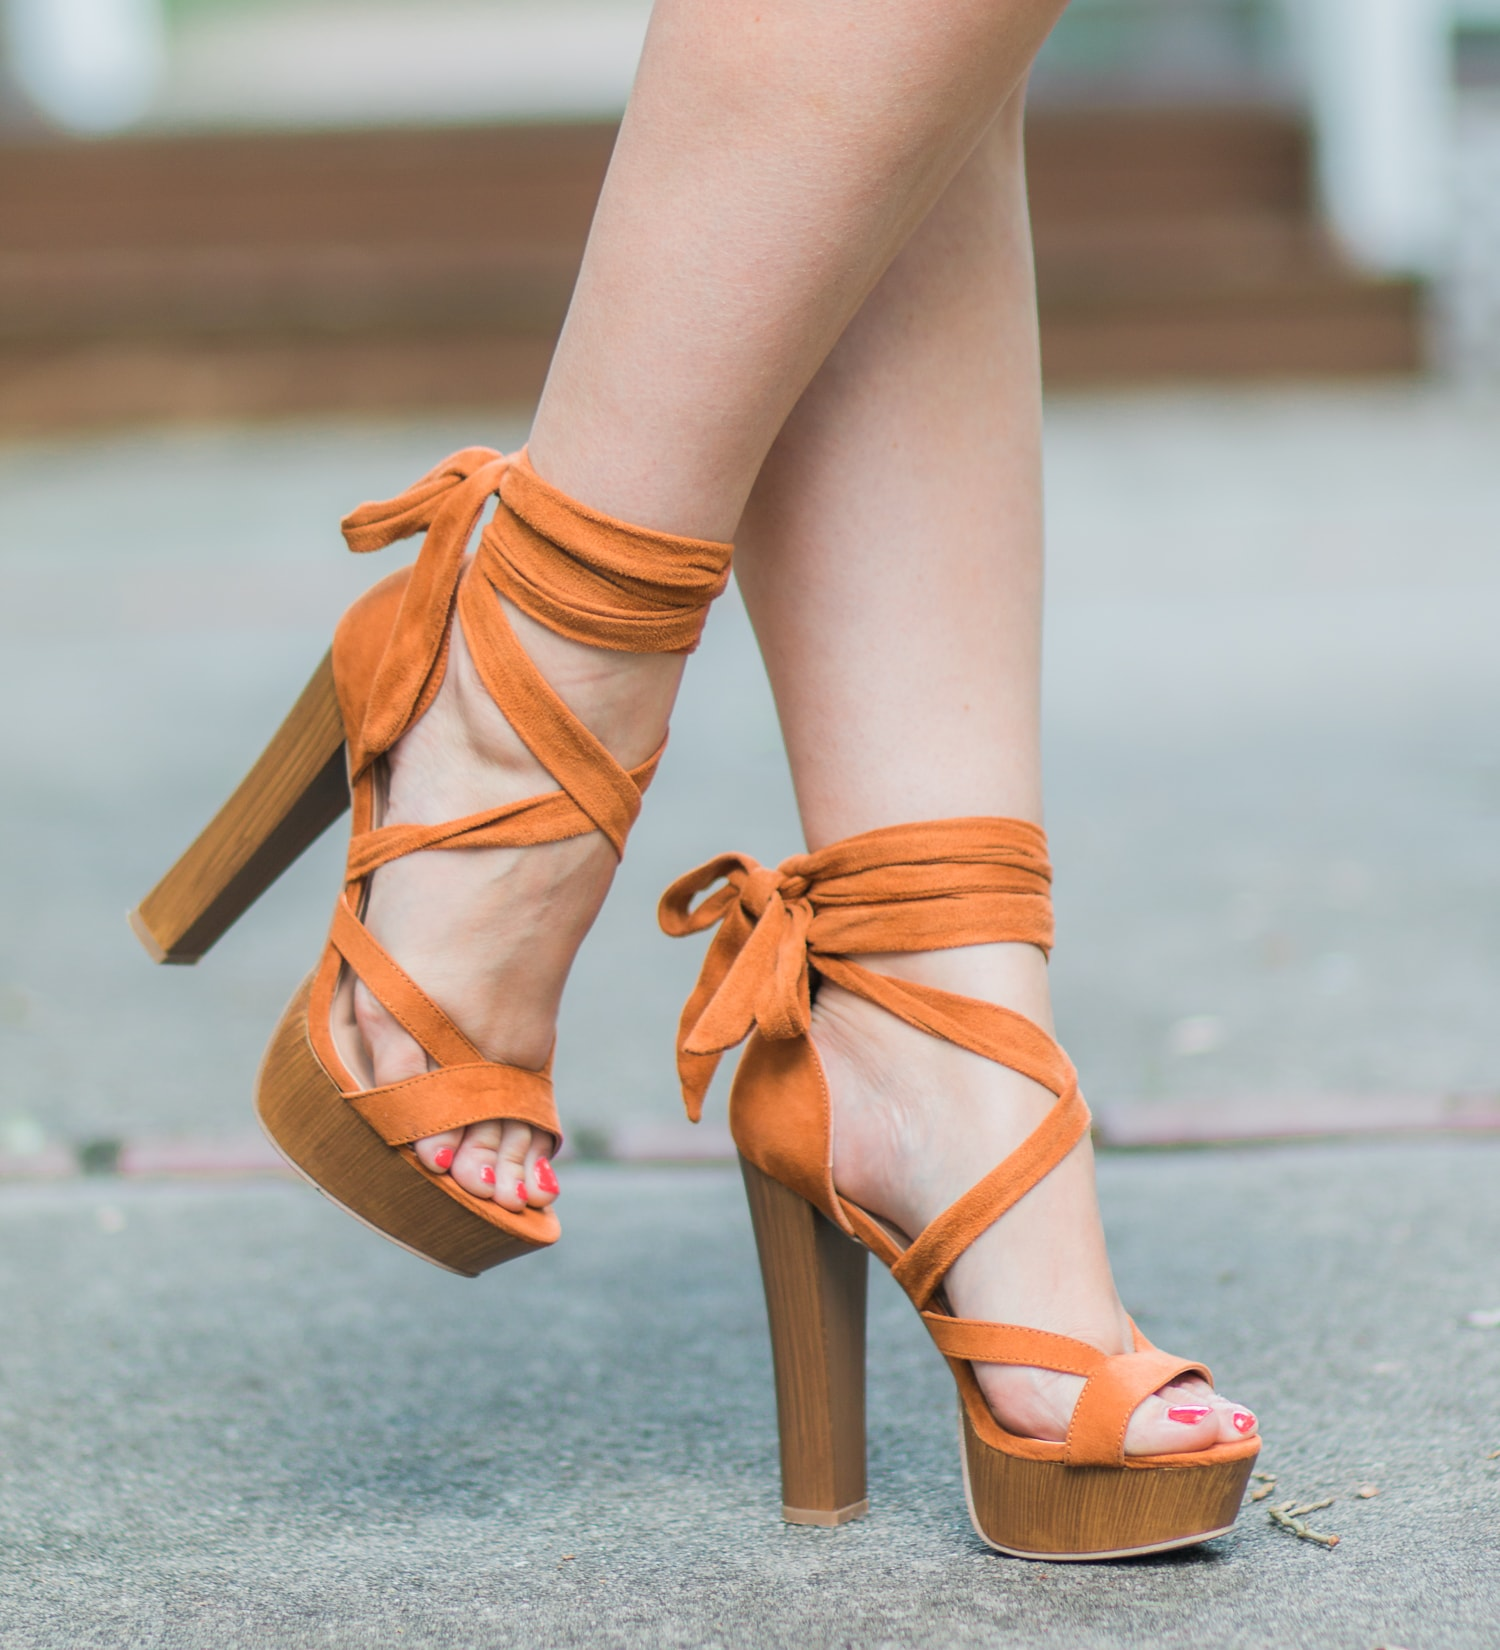 Ok, these are officially the cutest shoes I've ever seen! If you're looking for the perfect cognac lace-up heels, check out these platform sandals from Lulu*s! They're light as a feather, super comfortable, and only $31! Score! | Click through this pin to see the full summer outfit idea from style blogger Ashley Brooke Nicholas!